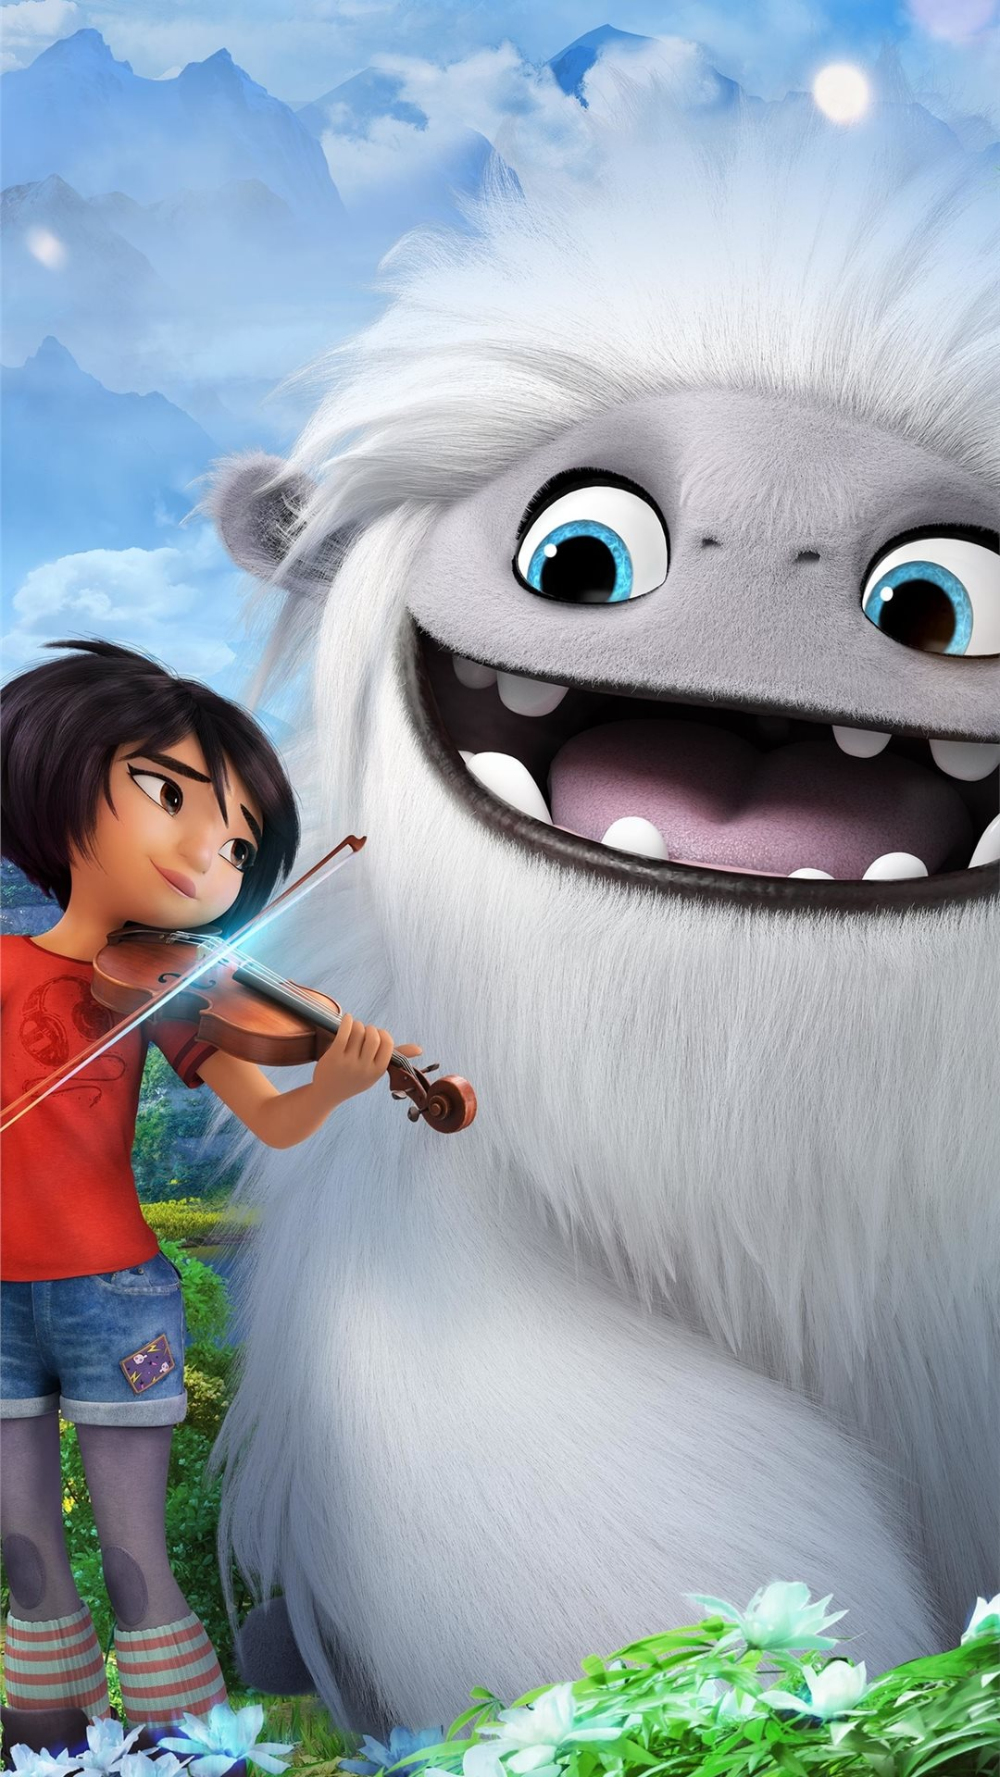 Free Download The Abominable Movie 4k Wallpaper Beaty Your Iphone Movies 4k 2019 Movie Wallpapers Disney Characters Wallpaper Animated Movies Characters